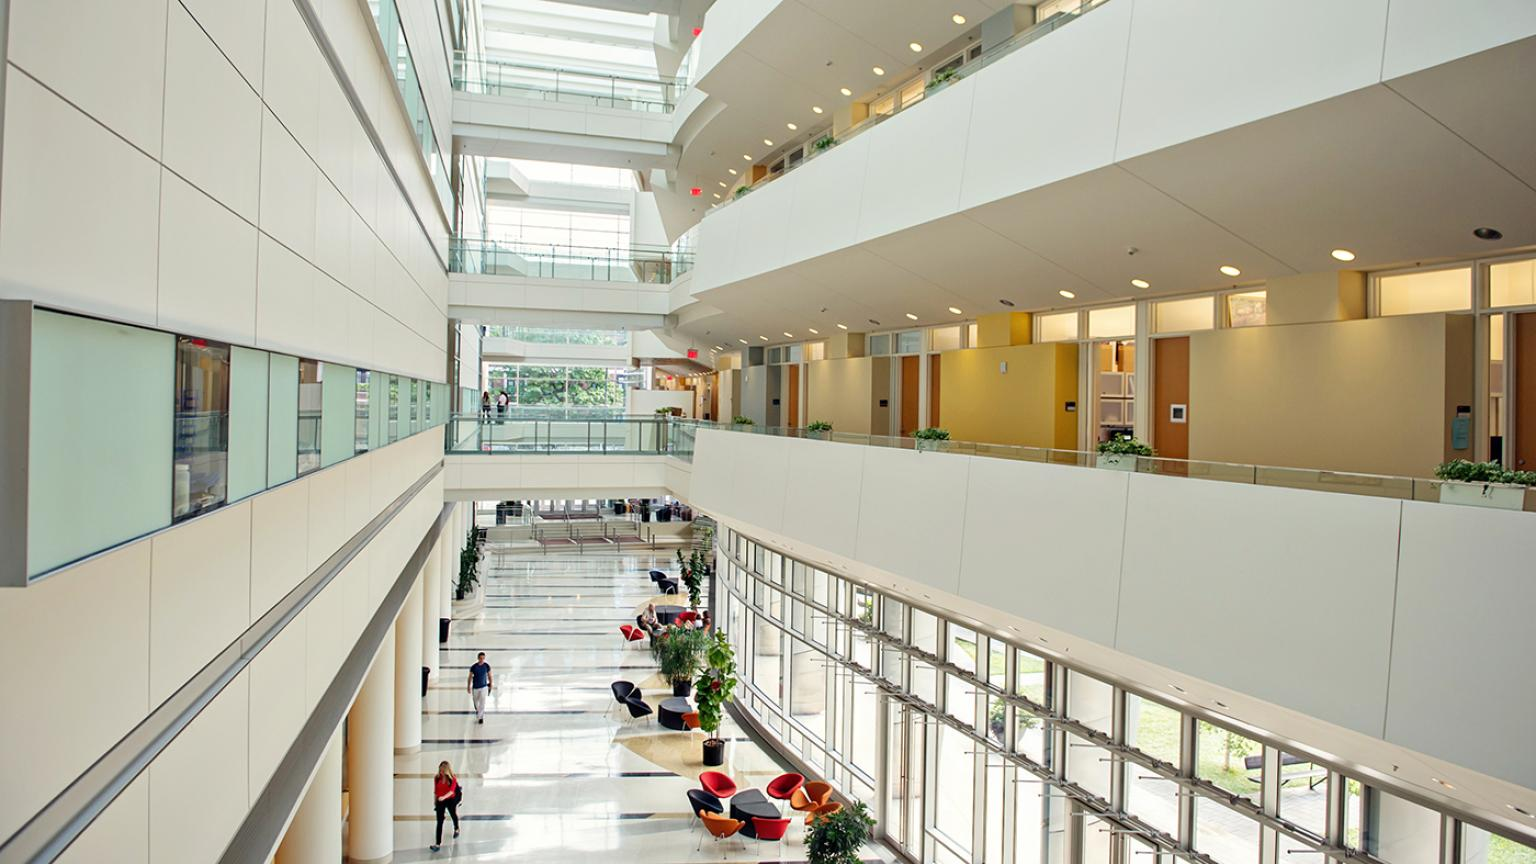 Interior shot of Biomedical Sciences Research Building lobby with comfy chairs, plants, and lots of natural light